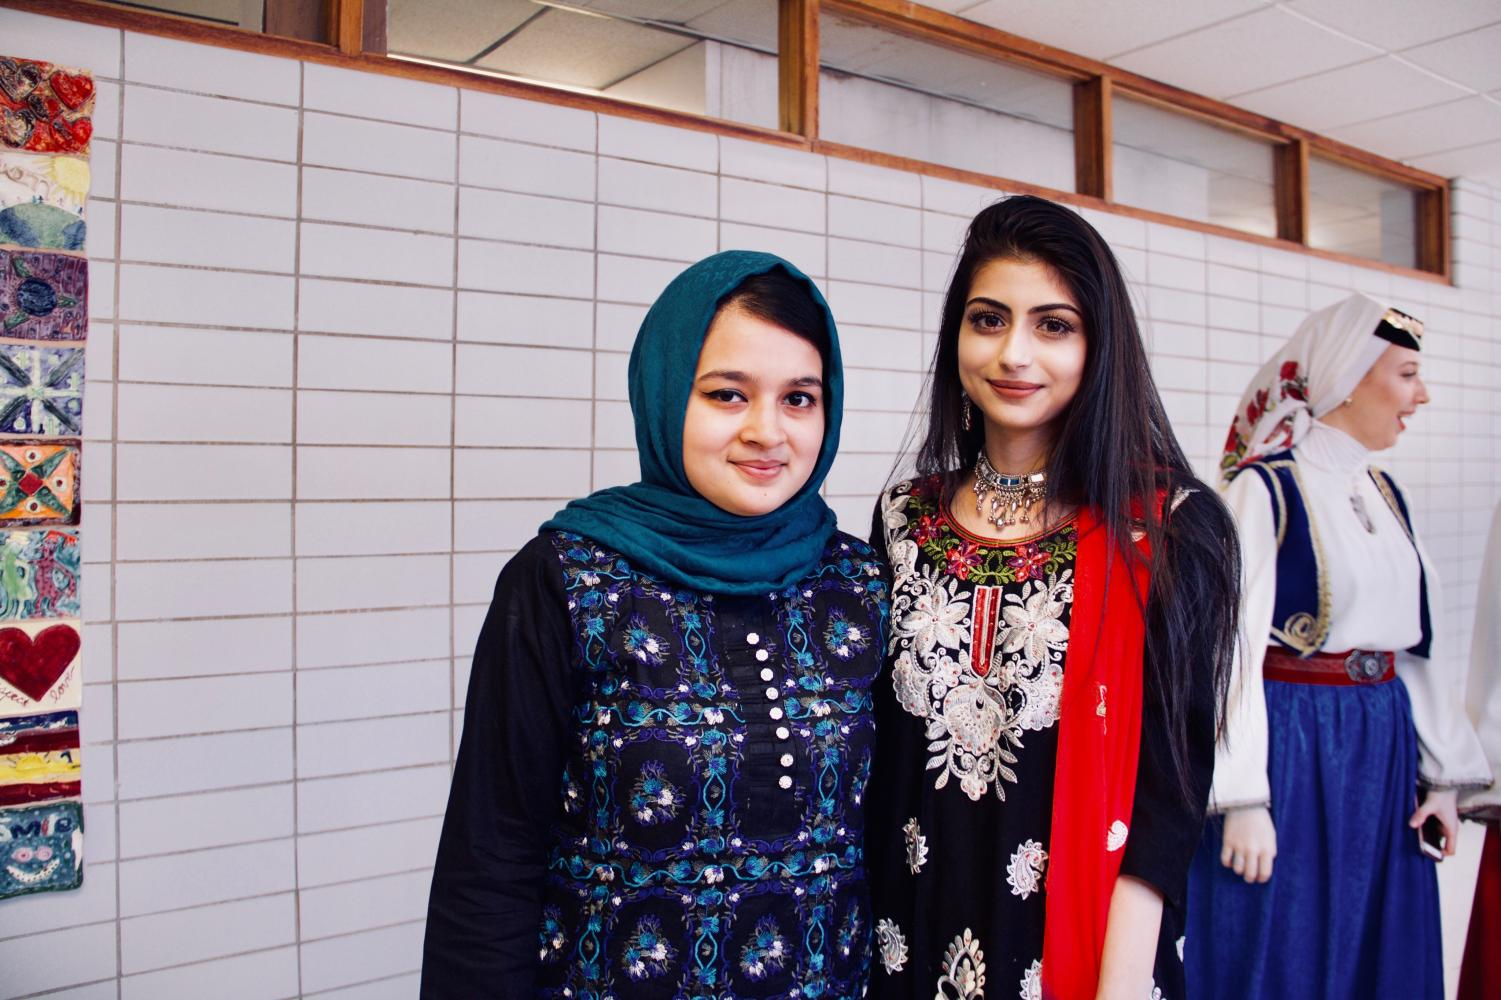 Niles North MSA members Amna Masood & Nazish Desai